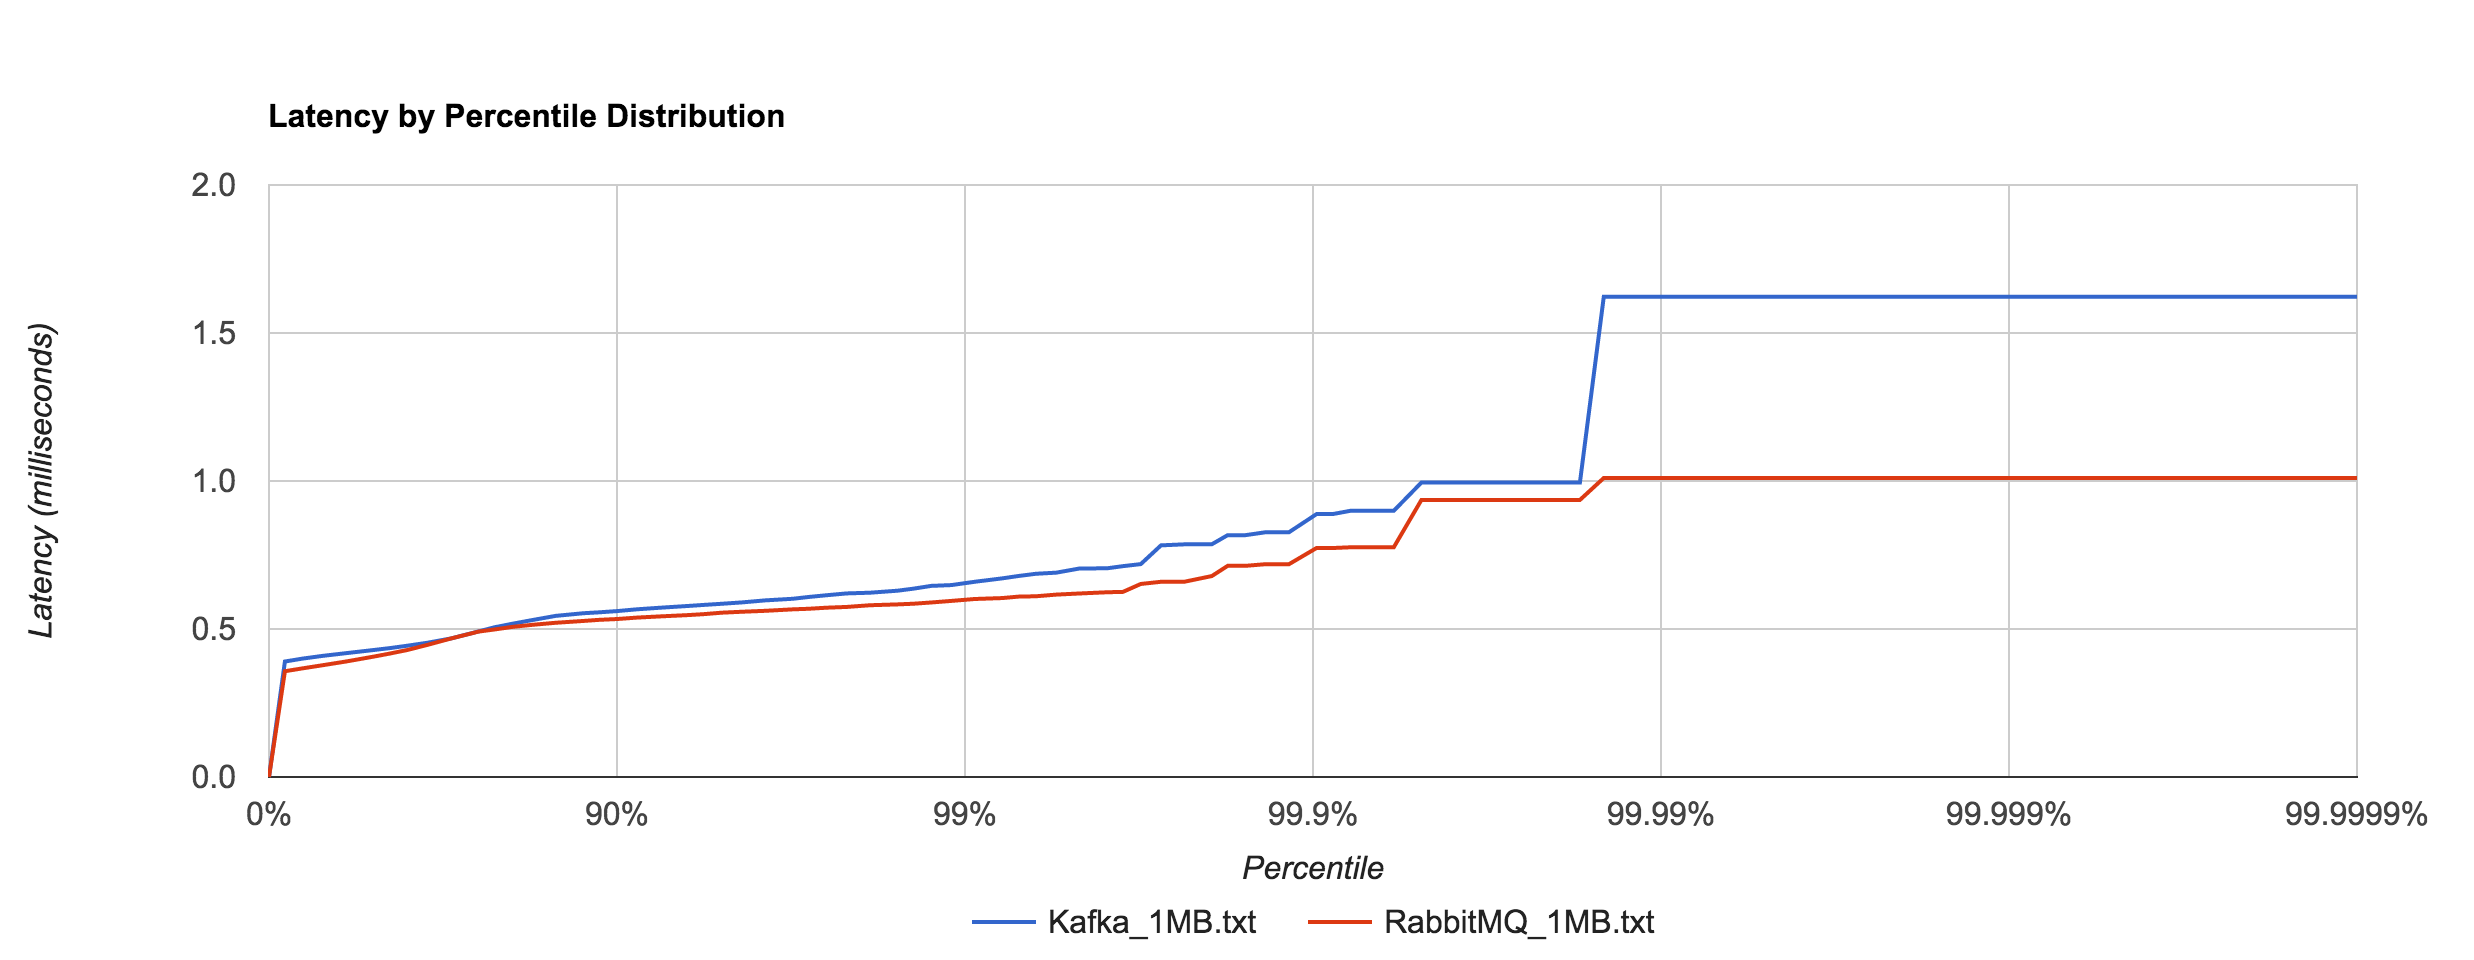 RabbitMQ_Kafka_1MB_latency